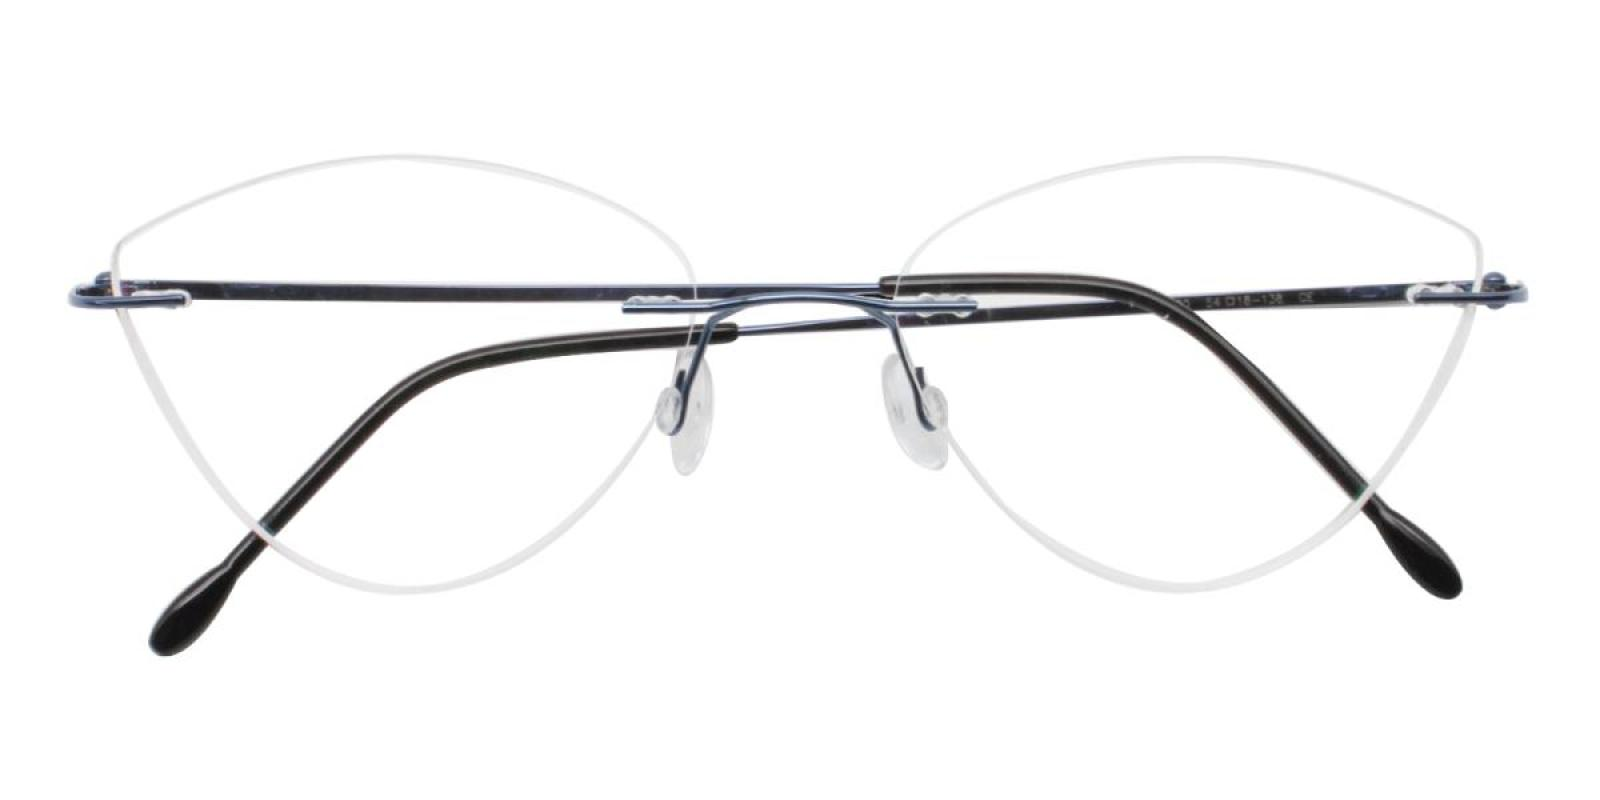 Huram-Blue-Cat / Varieties-Metal-Eyeglasses-detail